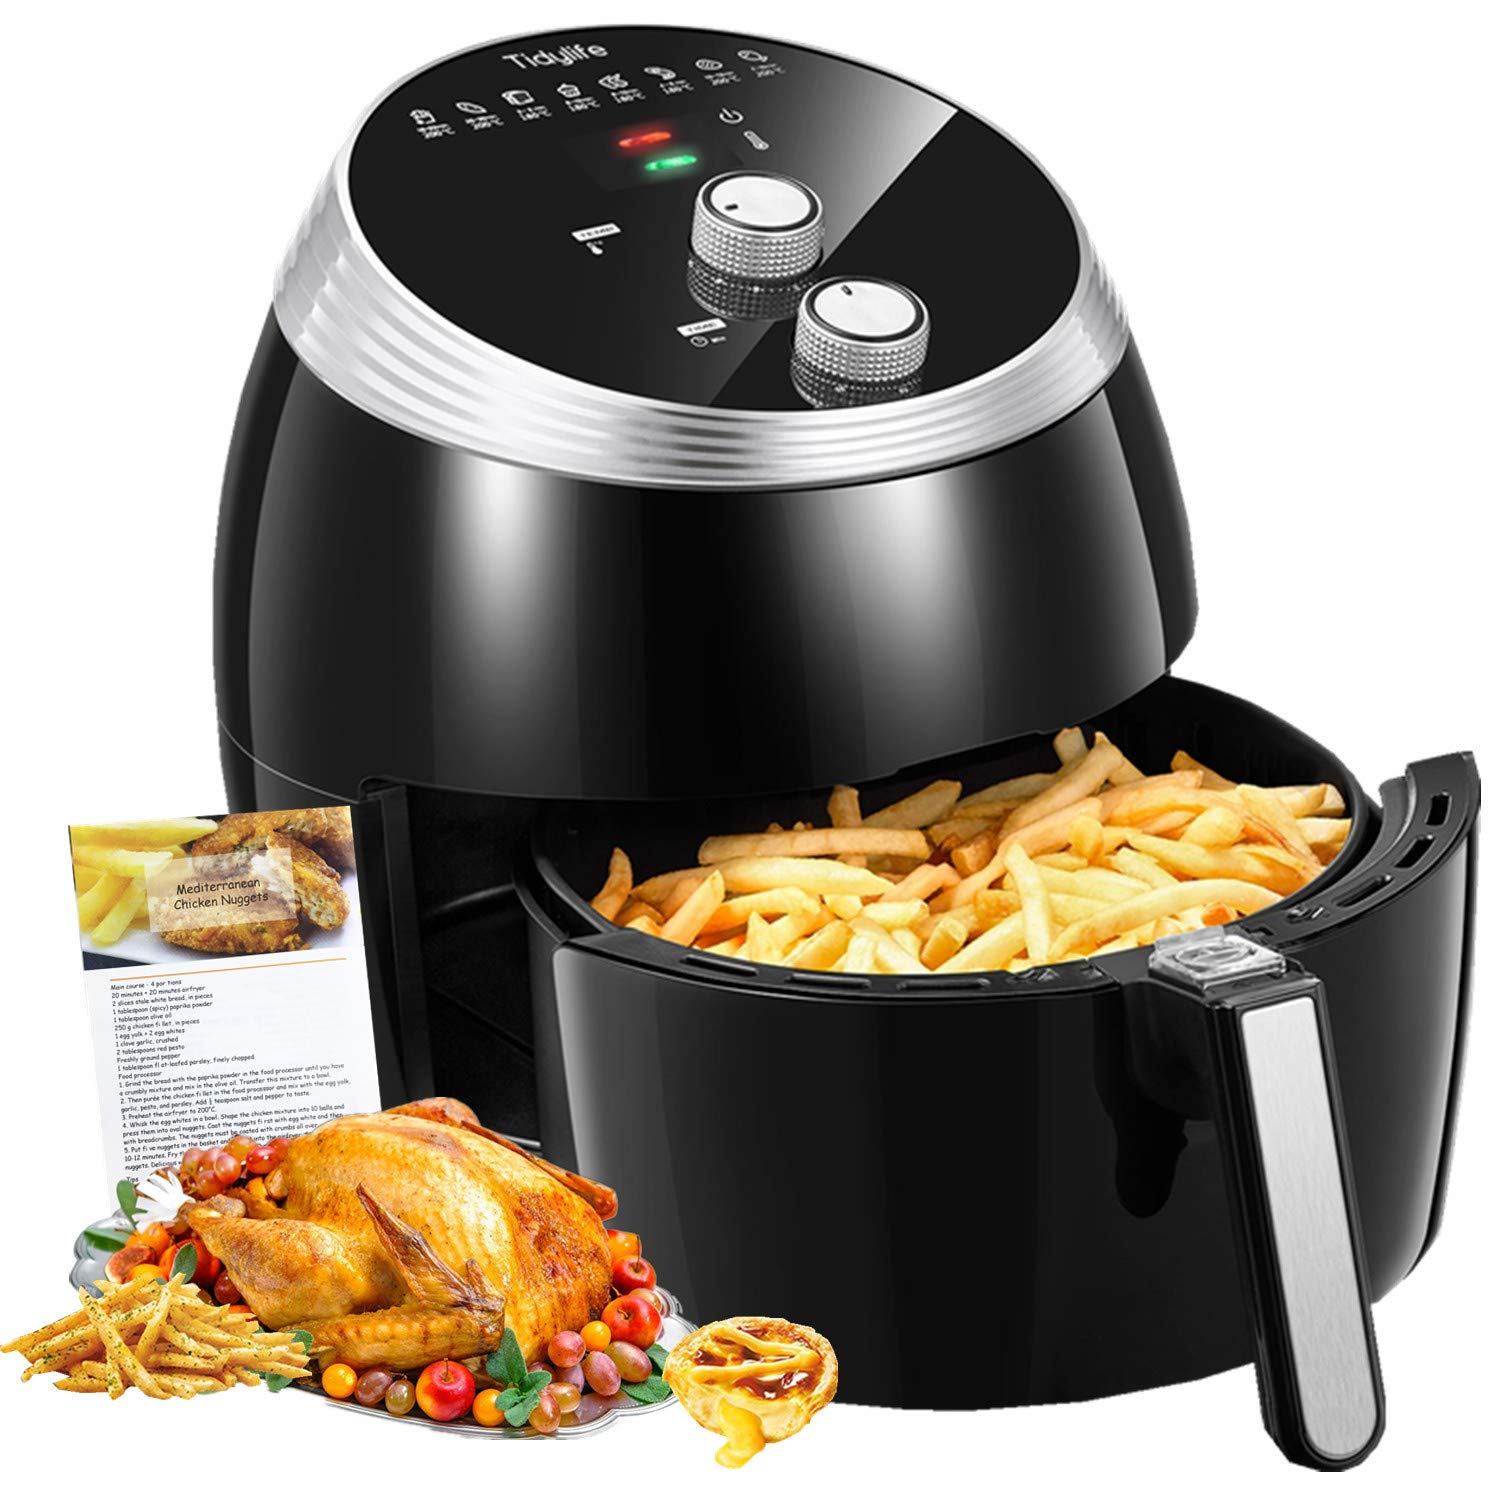 Air Fryer, Tidylife 6.3QT Large Air Fryer, 1700W Oilless XL Oven Cooker, Smart Time and Temperature Control, 7 Cooking Preset, 180-400℉Hot Air Fryer with Non-stick Basket, Auto Shut Off, 50+ Recipes